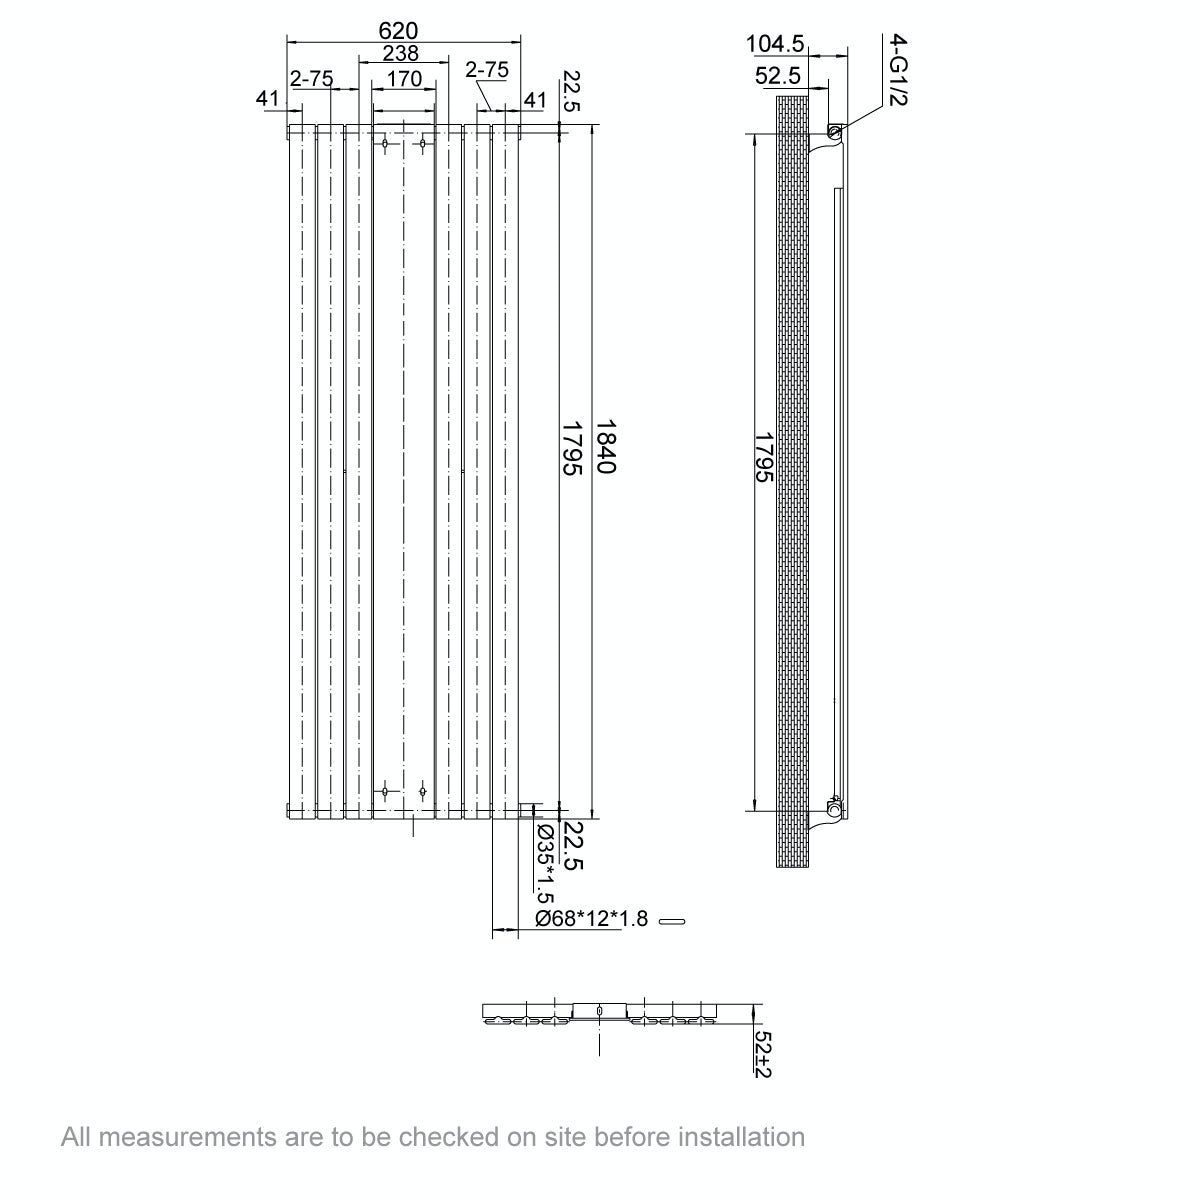 Dimensions for Mode Ellis white vertical radiator with mirror 1840 x 620